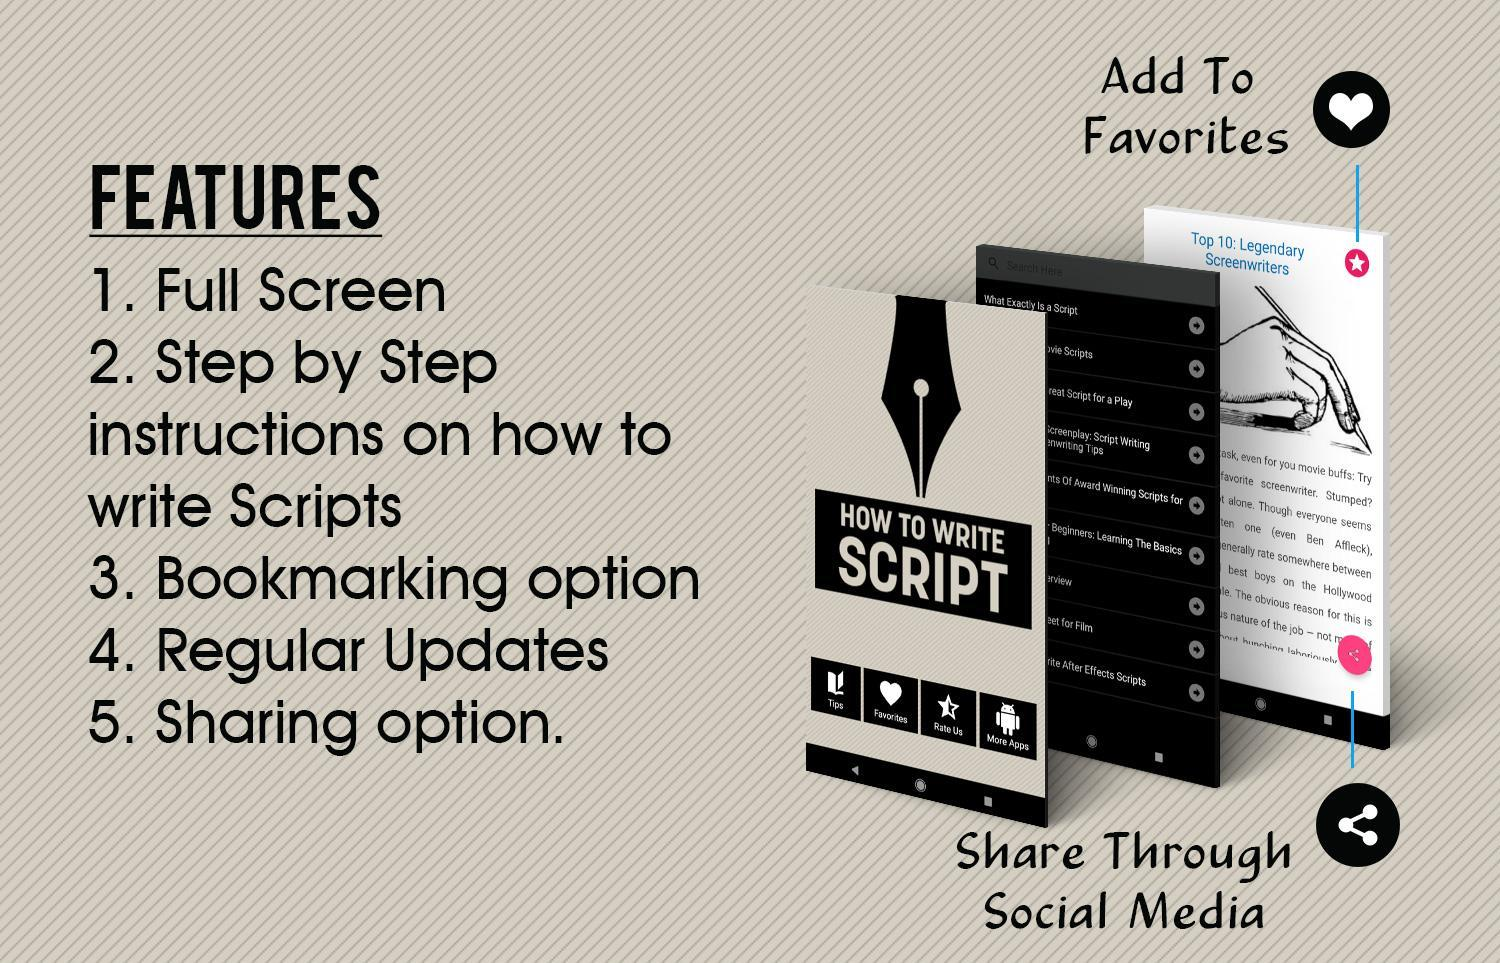 How To Write Script for Android - APK Download